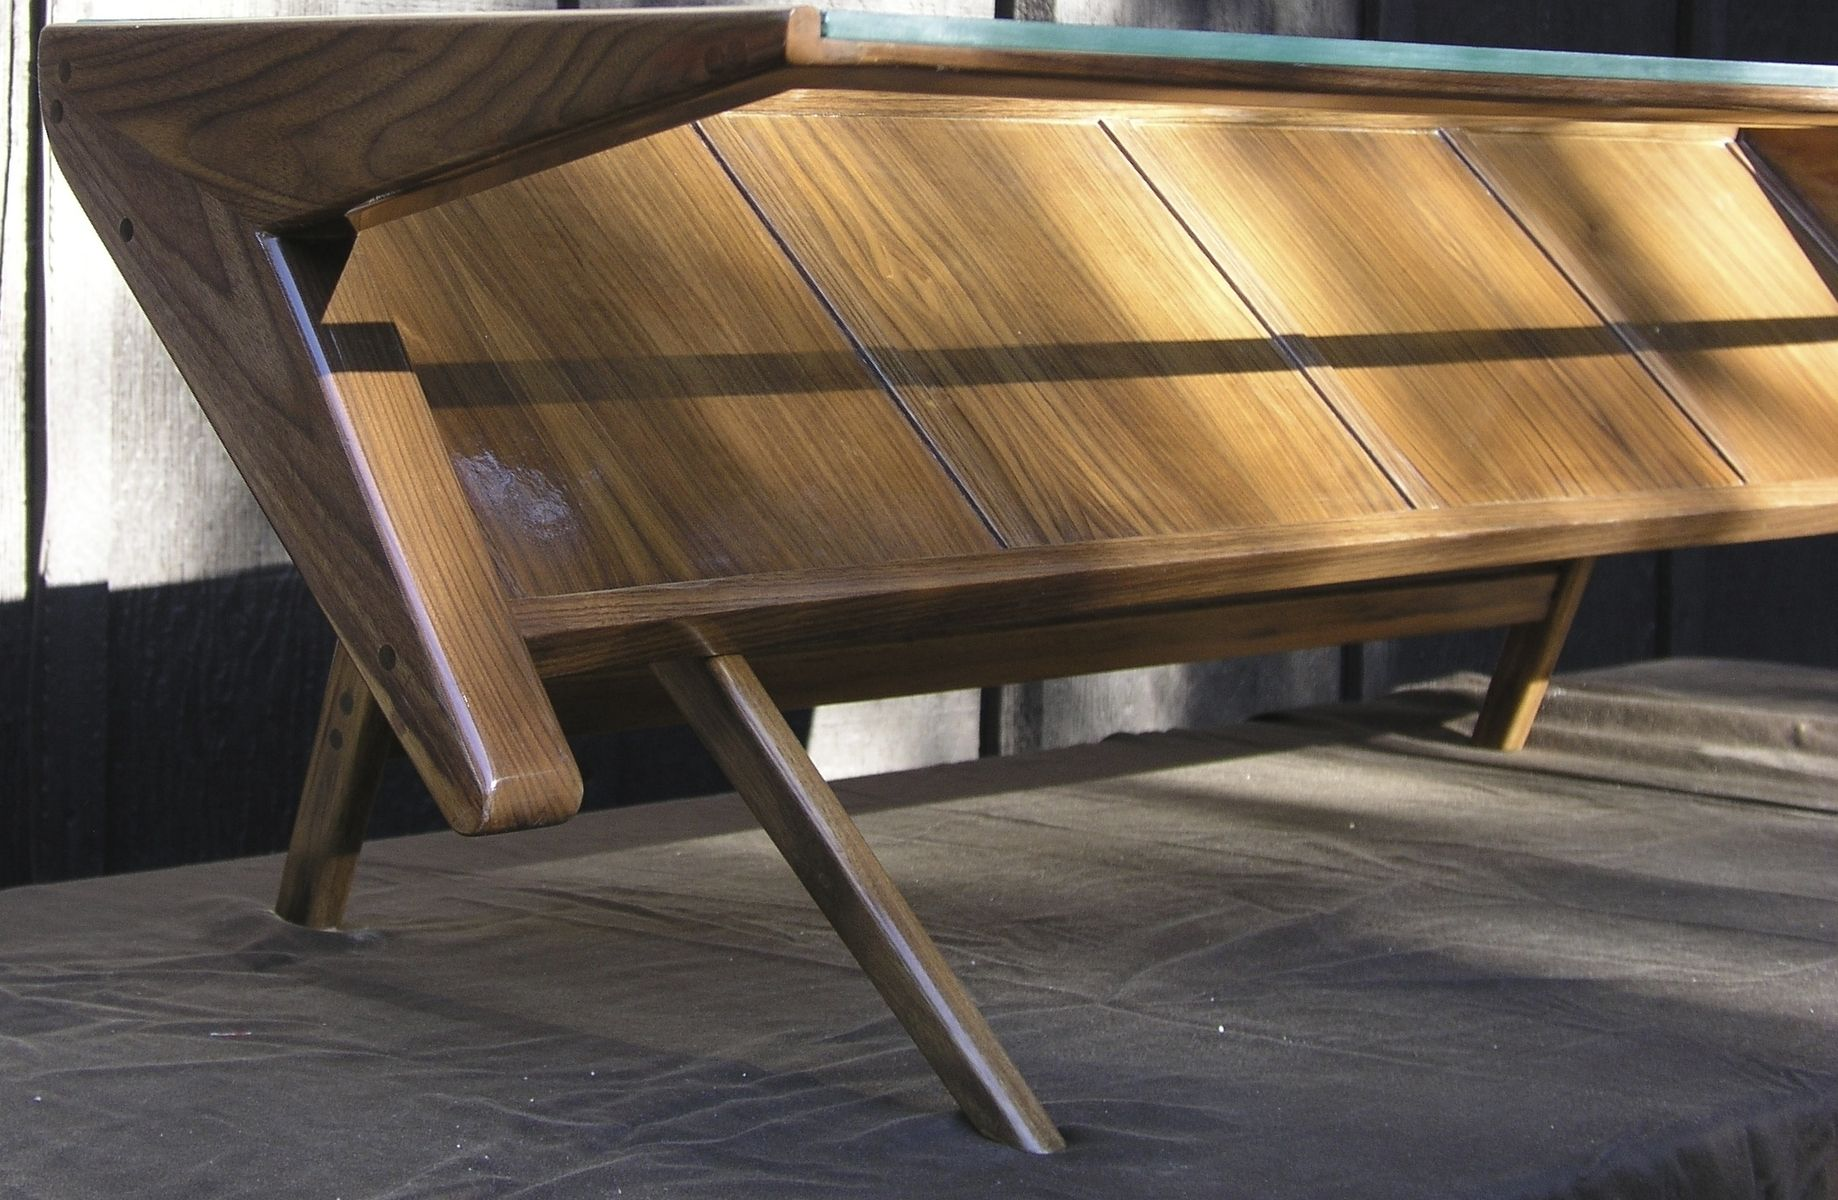 mid century modern coffee table. Custom Made Mid Century Modern Coffee Table With Glass Top, Solid Wood, Black Walnut L